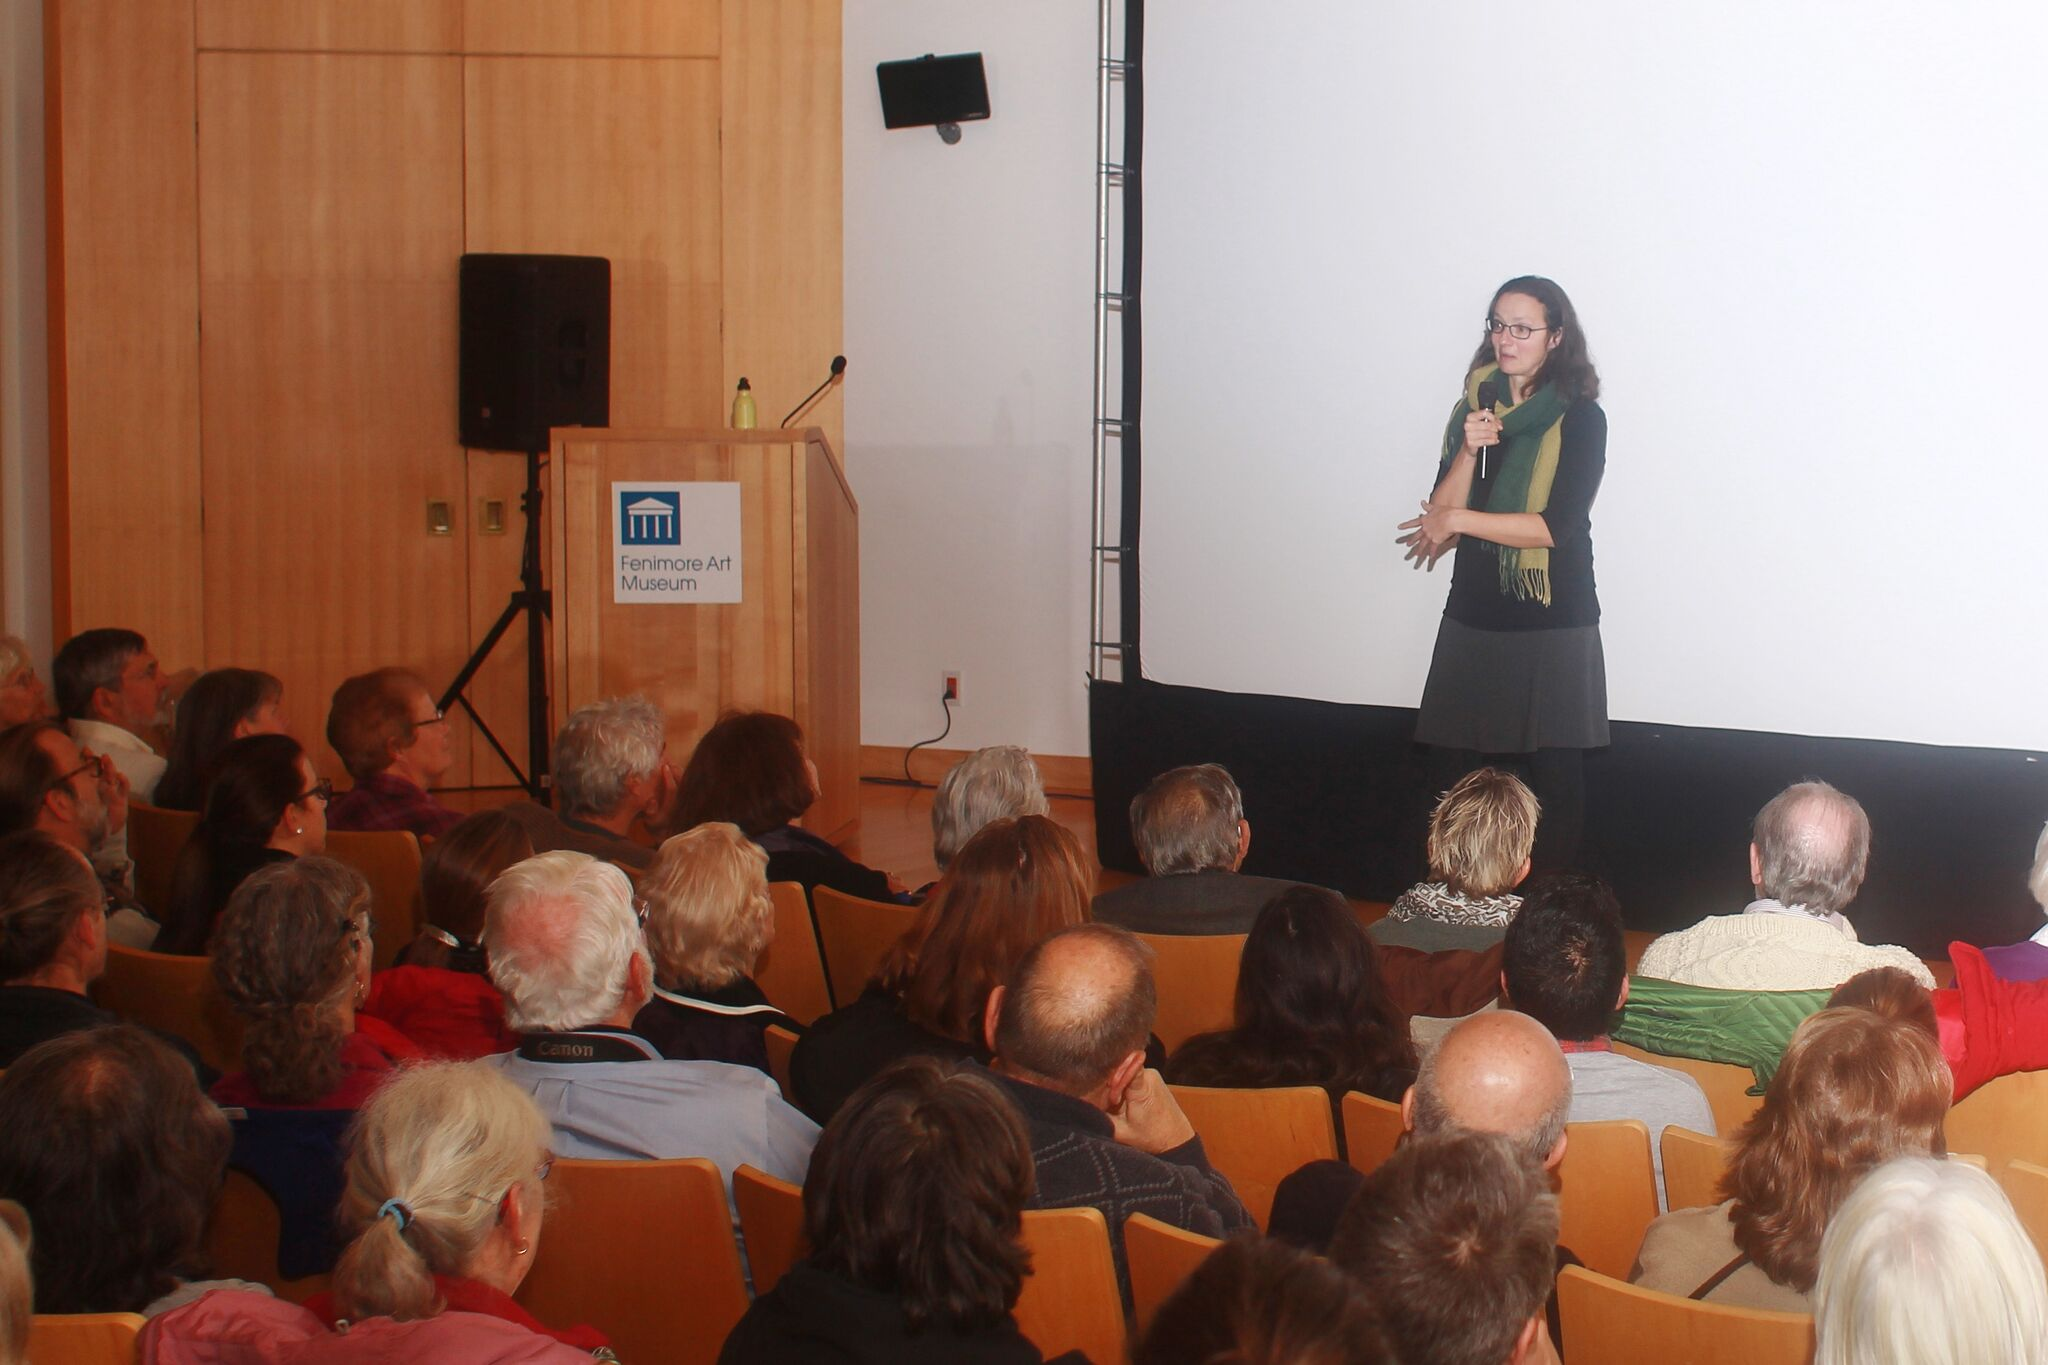 """Director Suzanne Crocker talks about her film """"All the Time in the World"""" in the Fenimore Art Museum auditorium at the 2016 Film Days."""